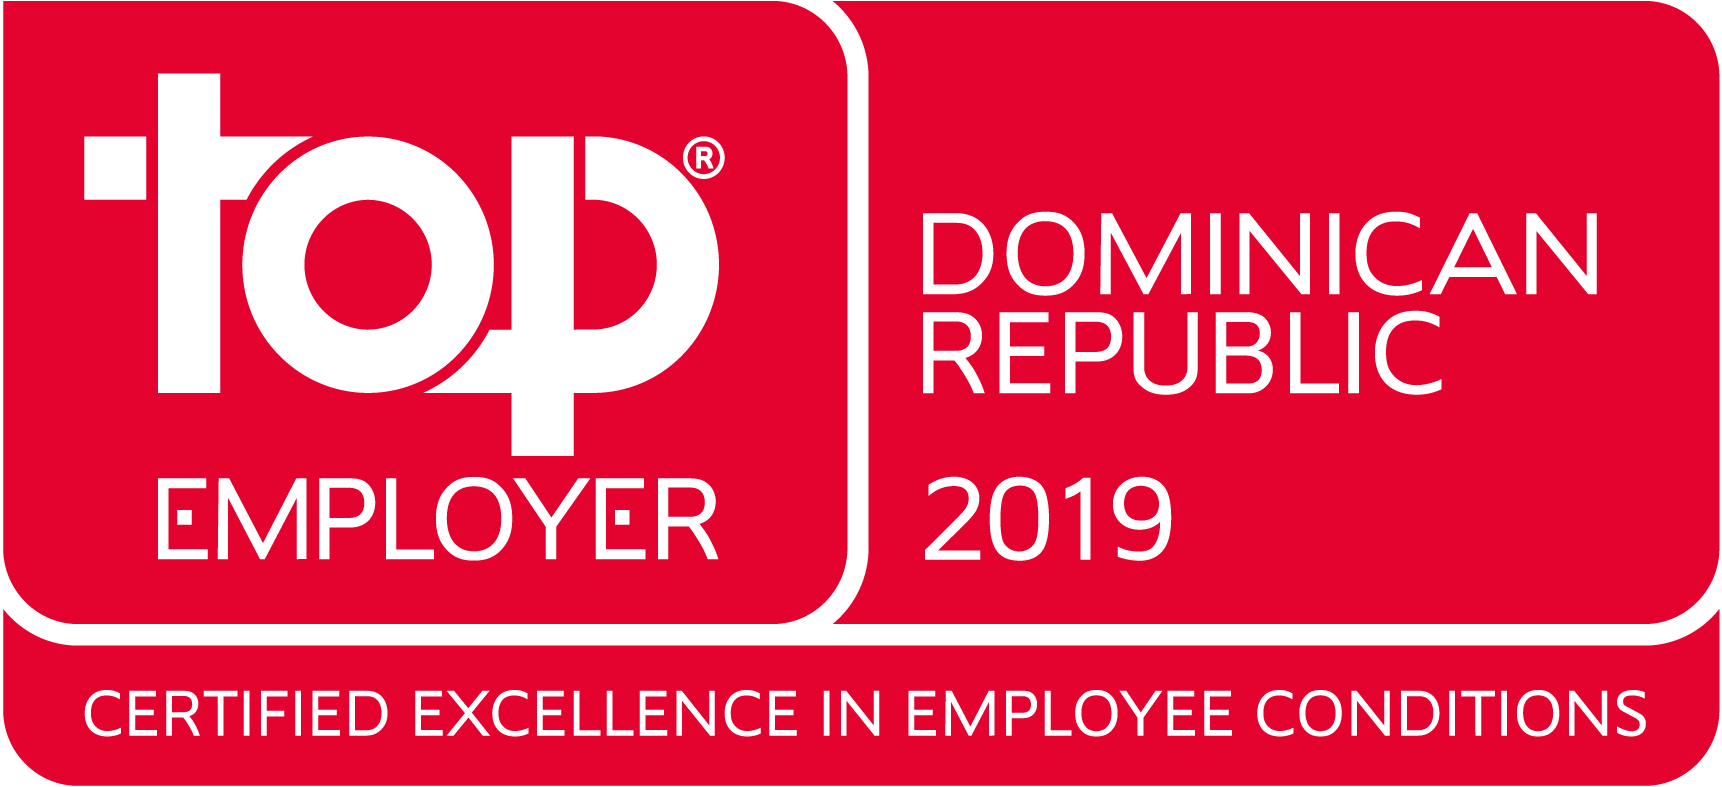 Top_Employer_Dominican_Republic_English_2019